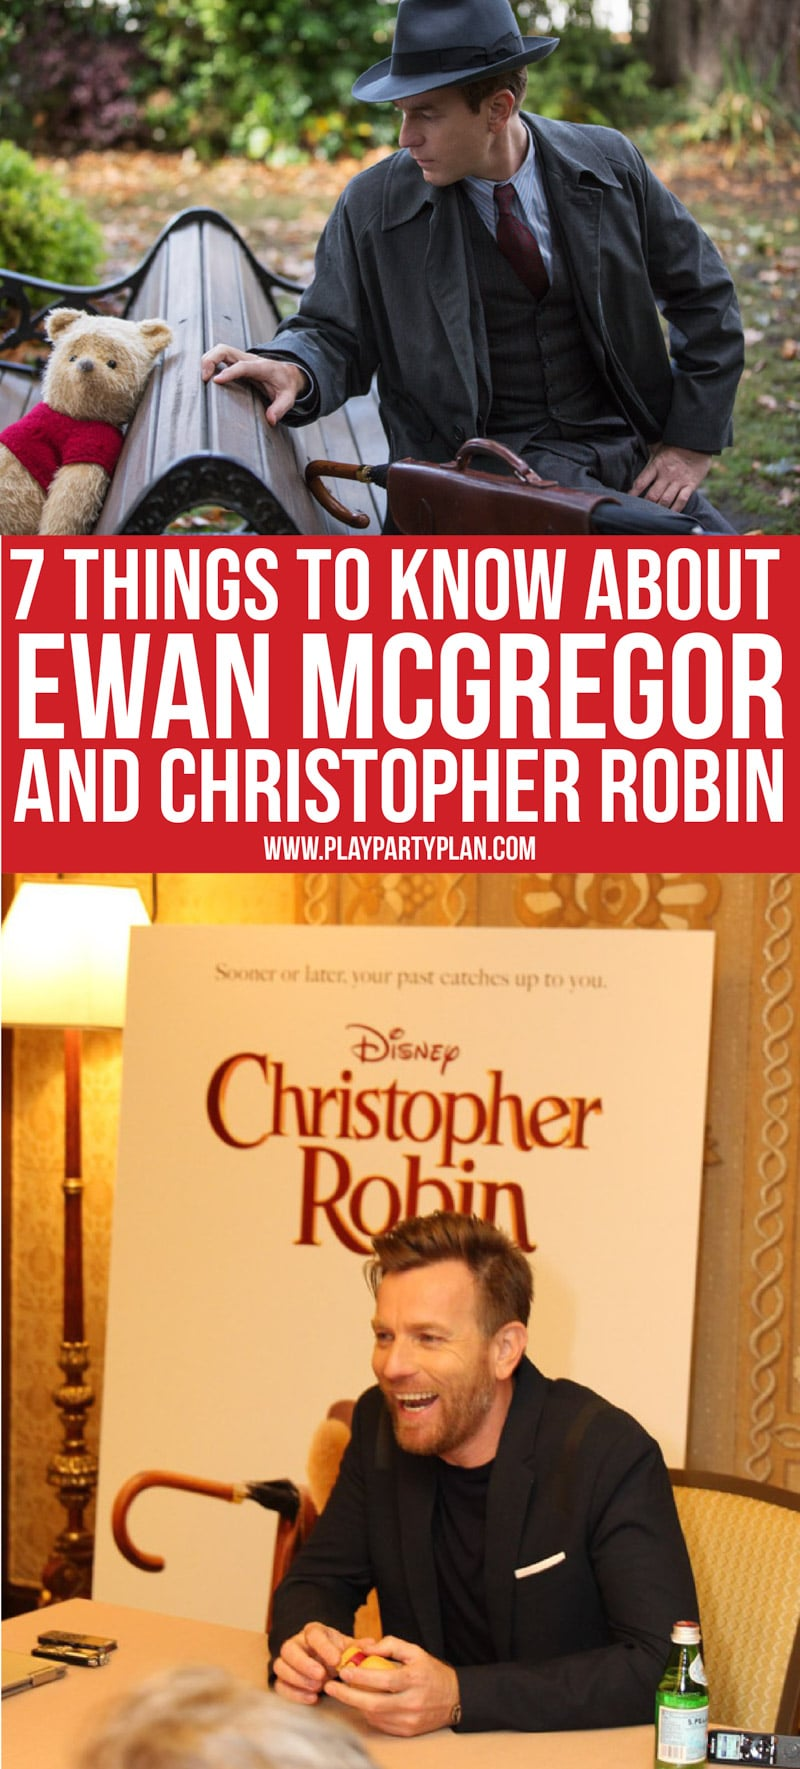 A collage of images from an Ewan McGregor interview about Christopher Robin